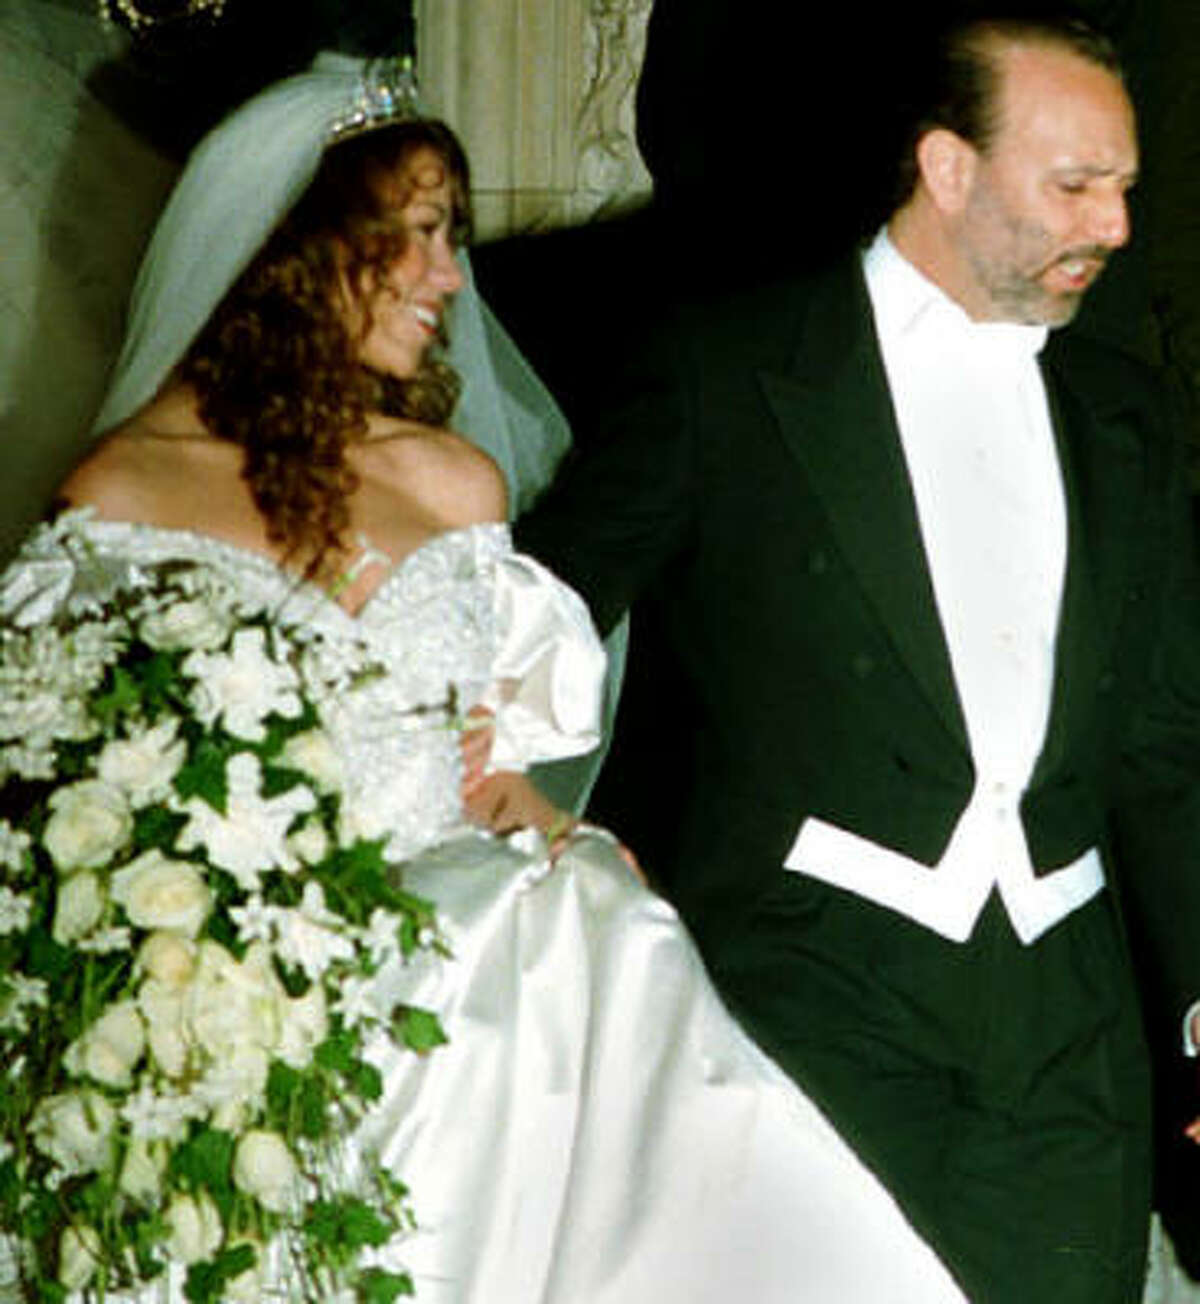 With Columbia Records executive Tommy Mottola, she became the first artist to have her first five singles hit the U.S. Billboard Hot 100. She would later marry Mottola in 1993.